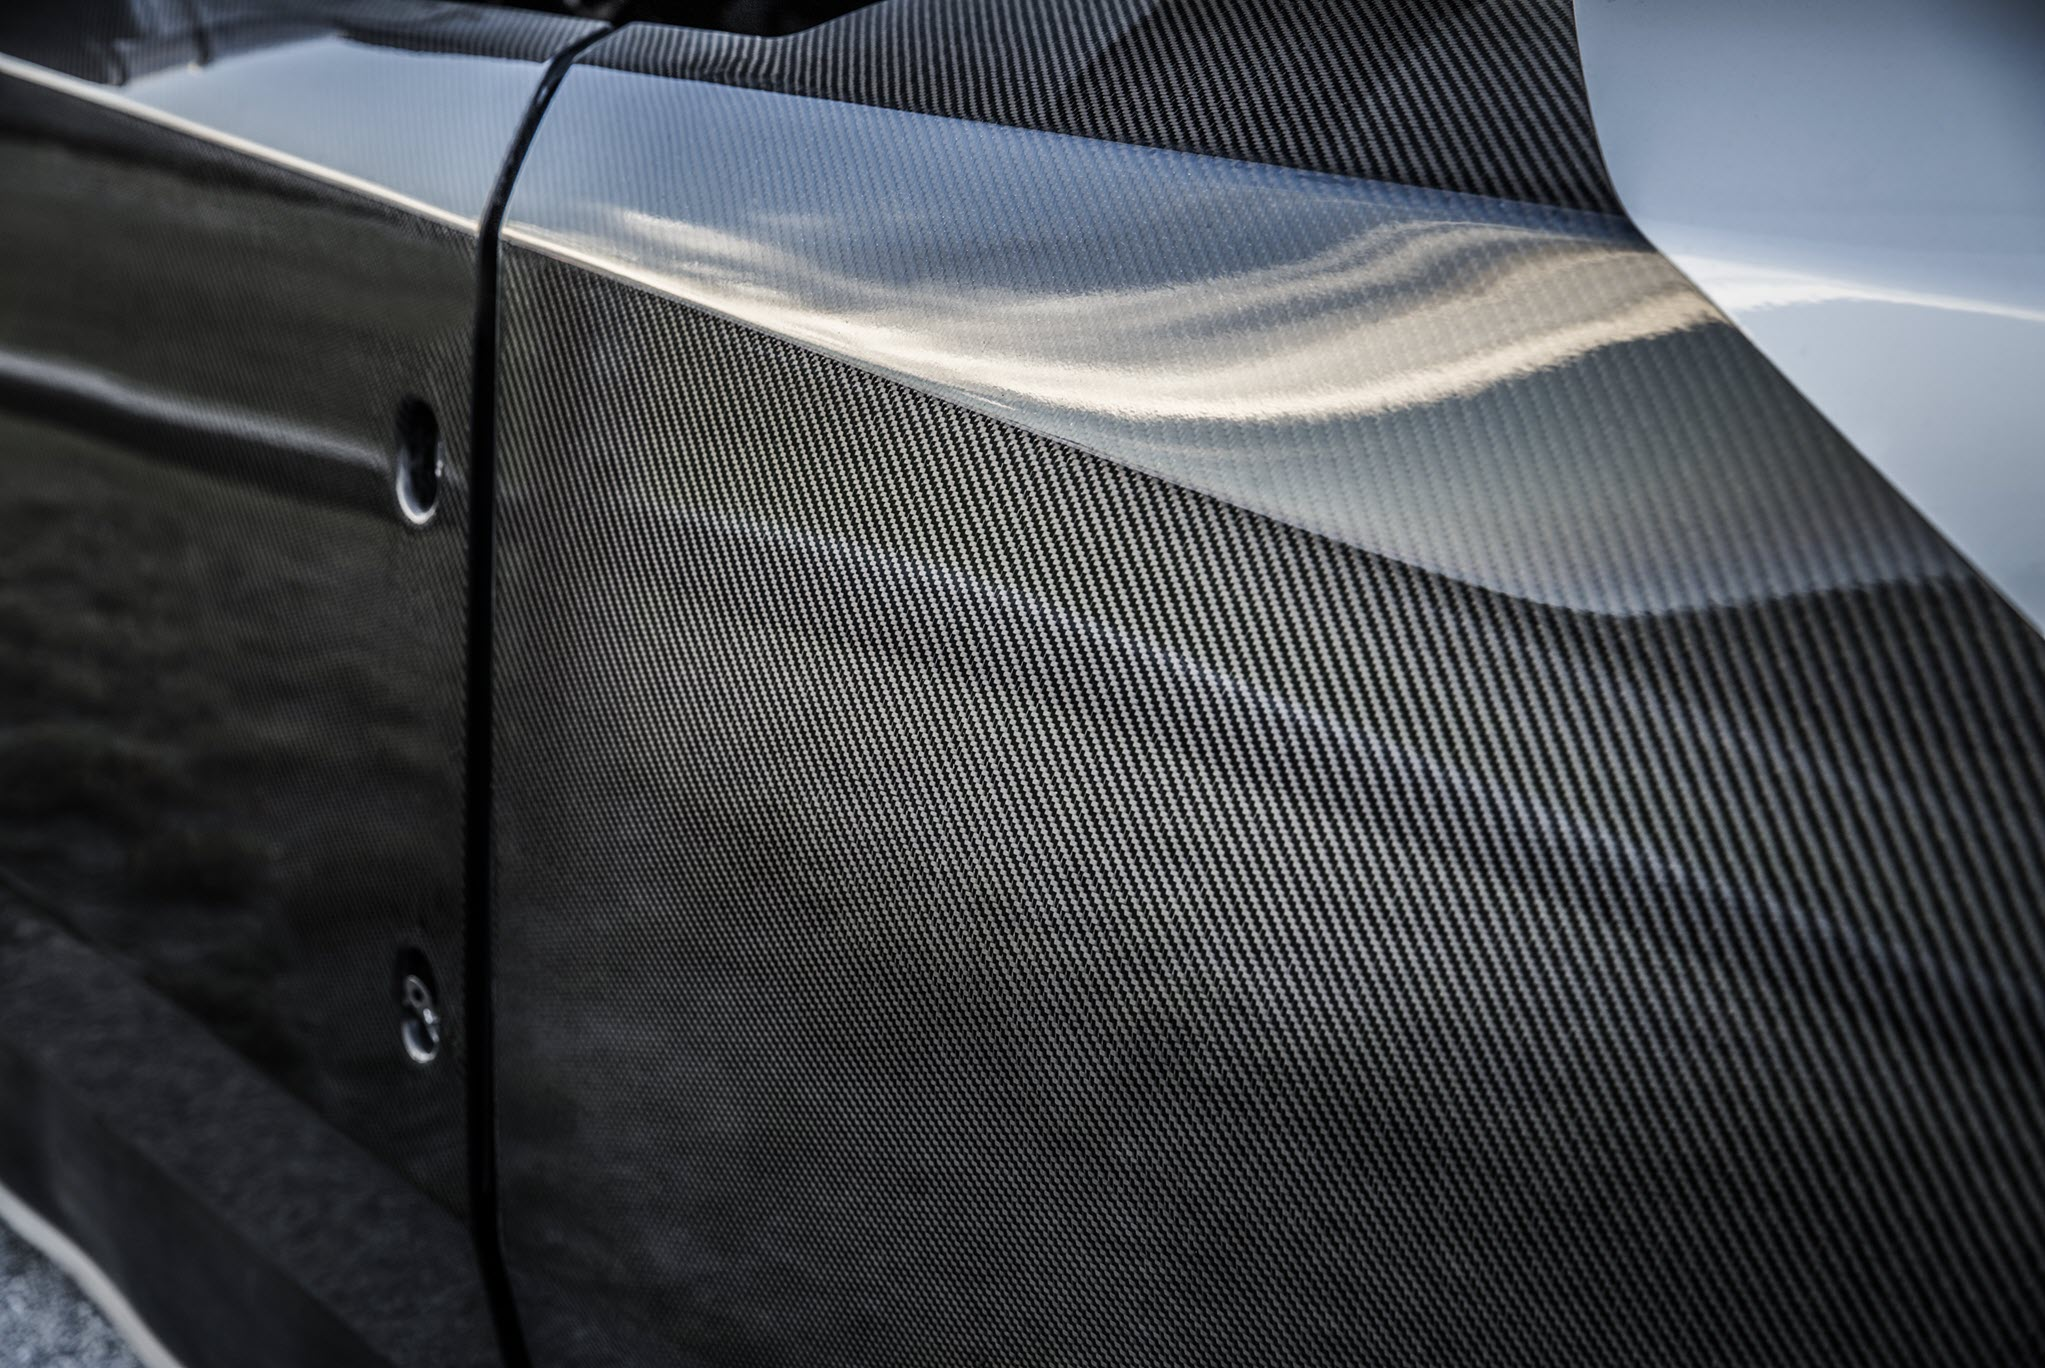 close-up of carbon fiber siding